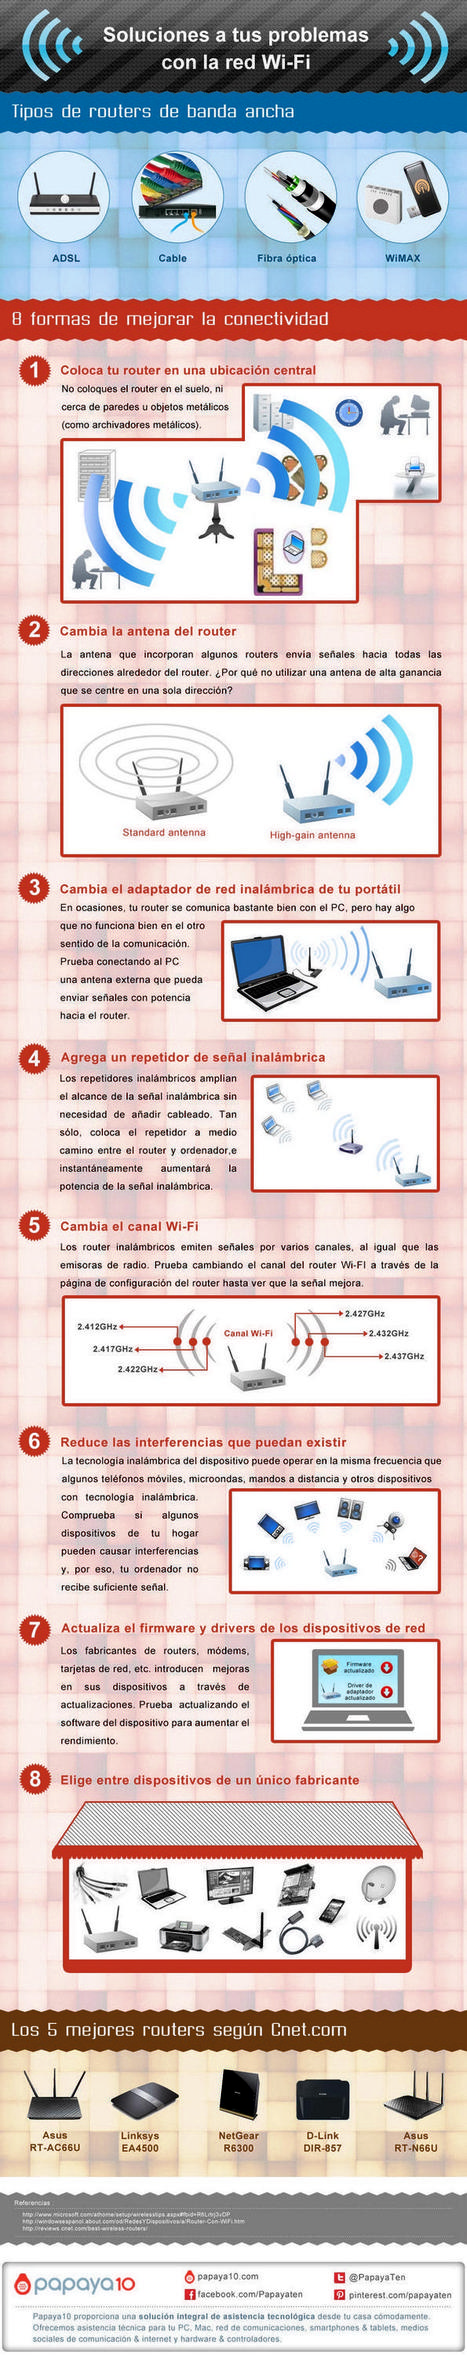 8 recomendaciones para mejorar la conectividad de la red WiFi de tu casa u oficina | School in the cloud | Scoop.it